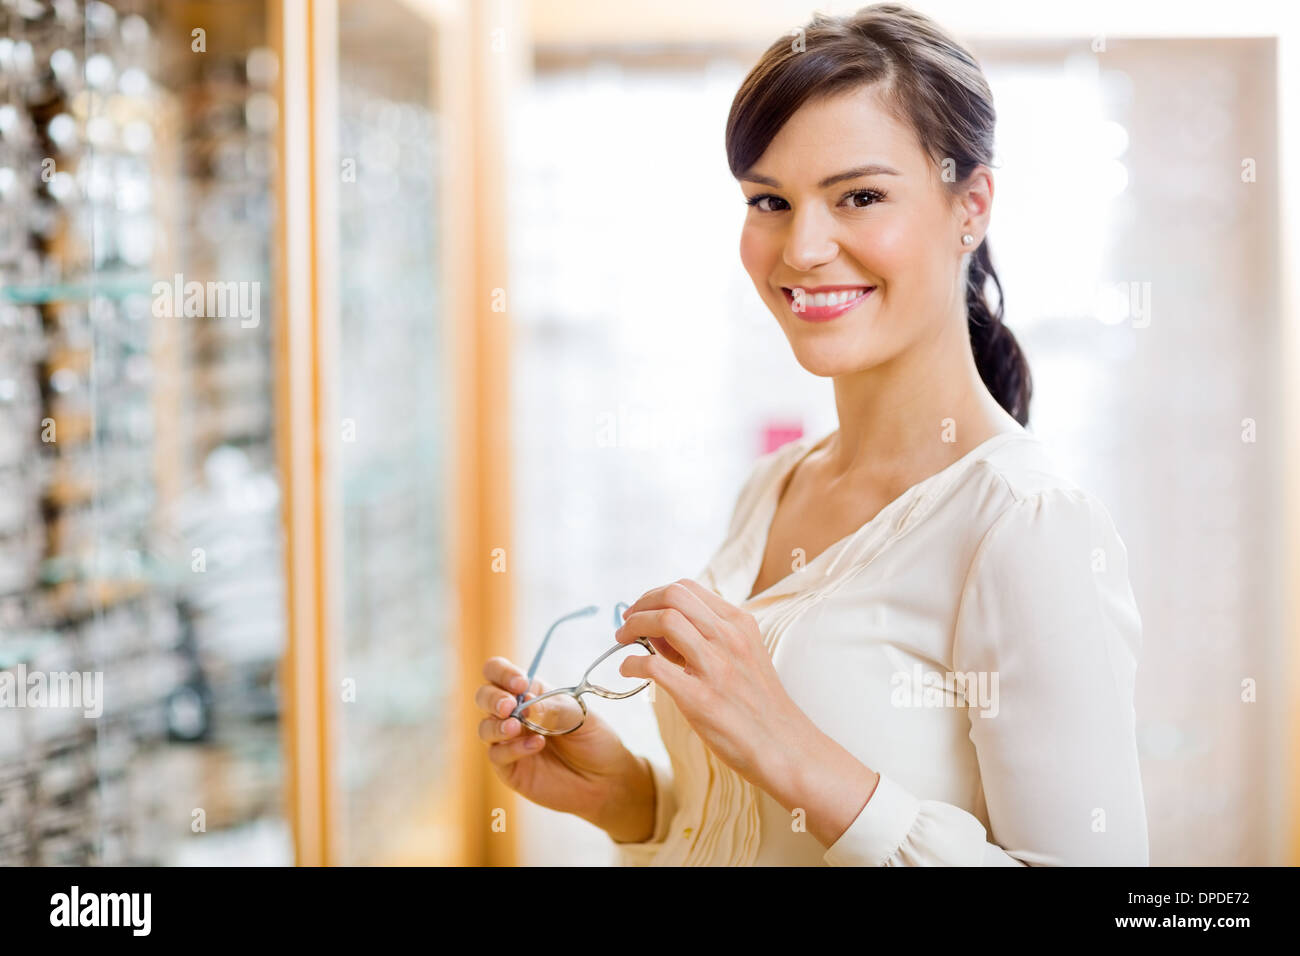 Woman Buying Glasses In Optician Store - Stock Image